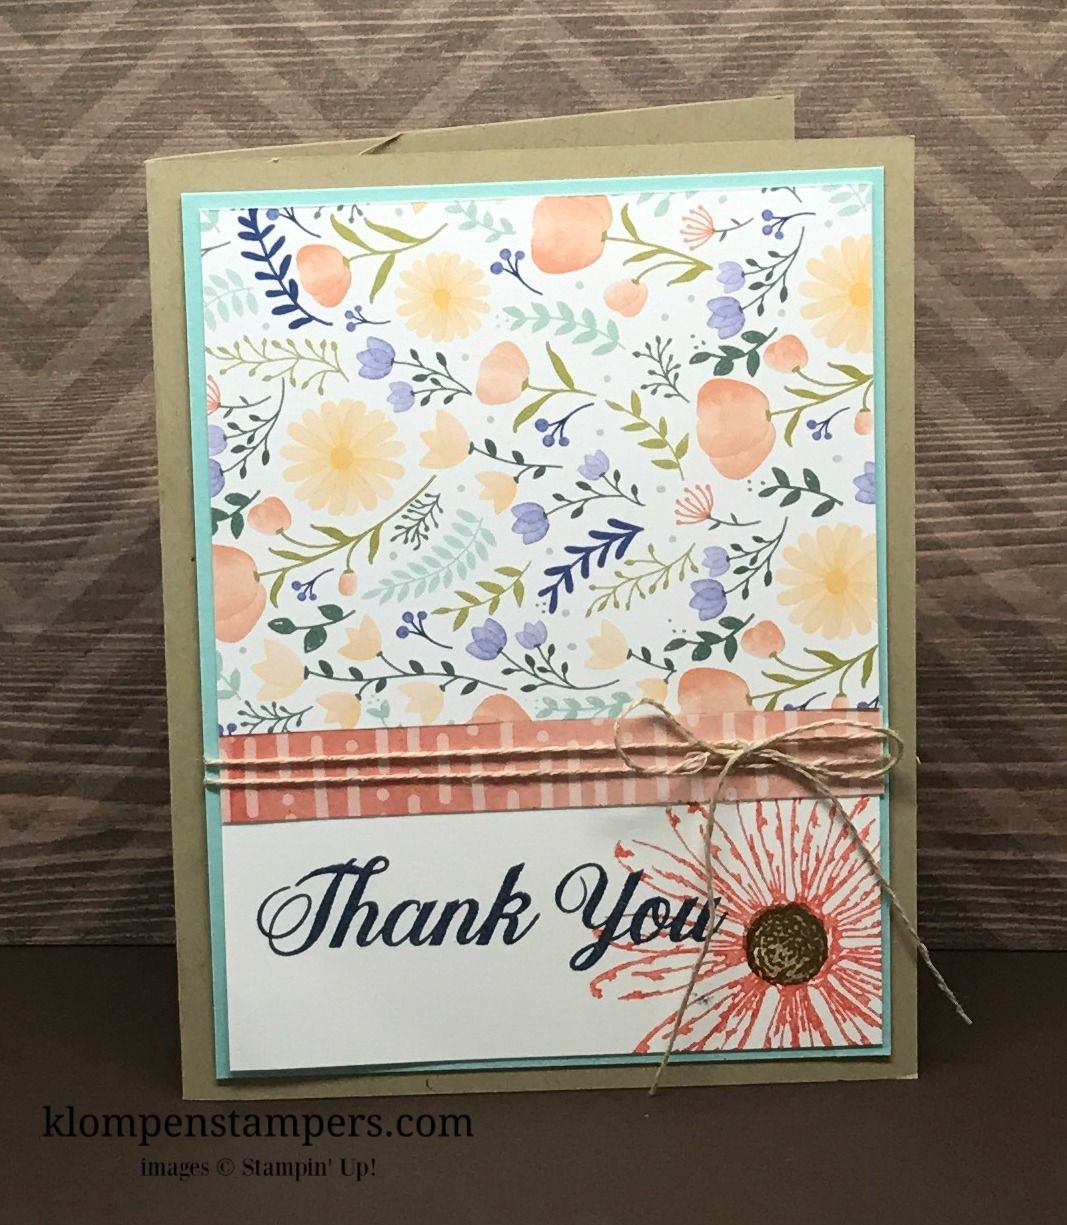 Card Making Ideas And Instructions Part - 24: Making Cards · Several Different Ideas Using The Delightful Daisy DSP From  Stampinu0027 Up! Cutting Instructions Posted